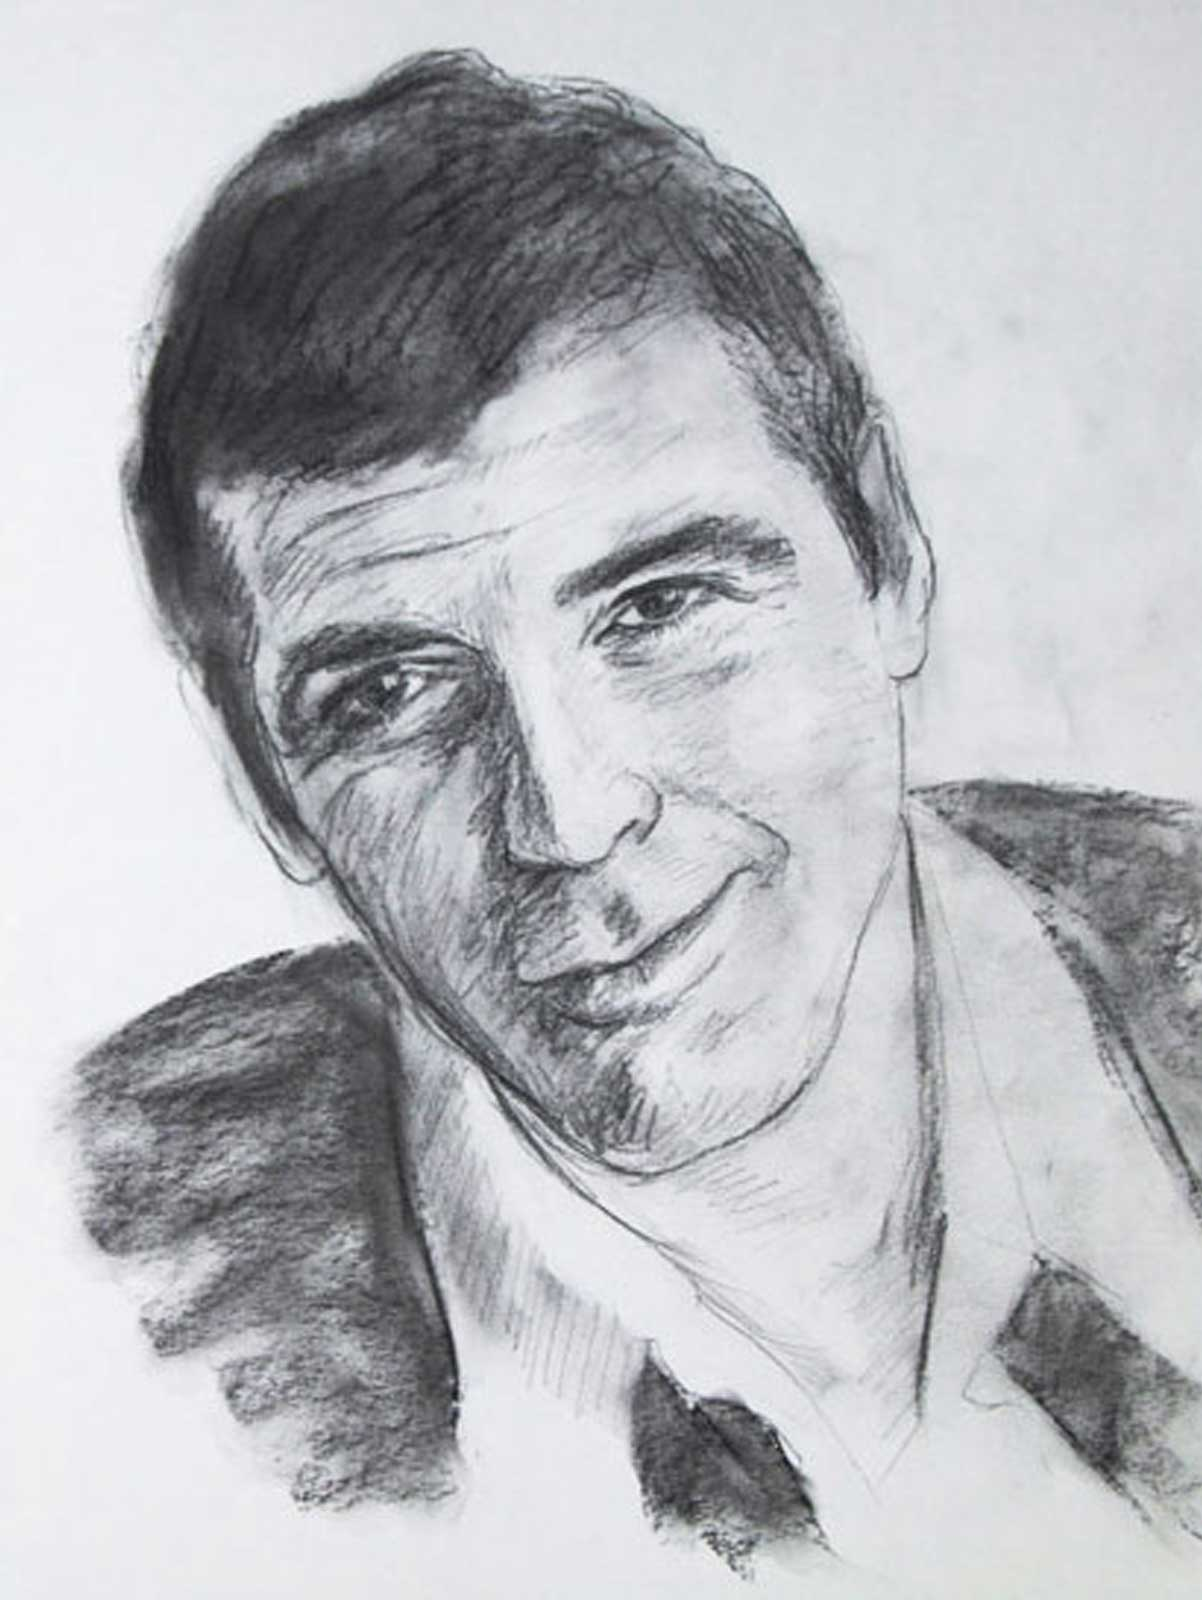 George Clonney portrait drawing on paper